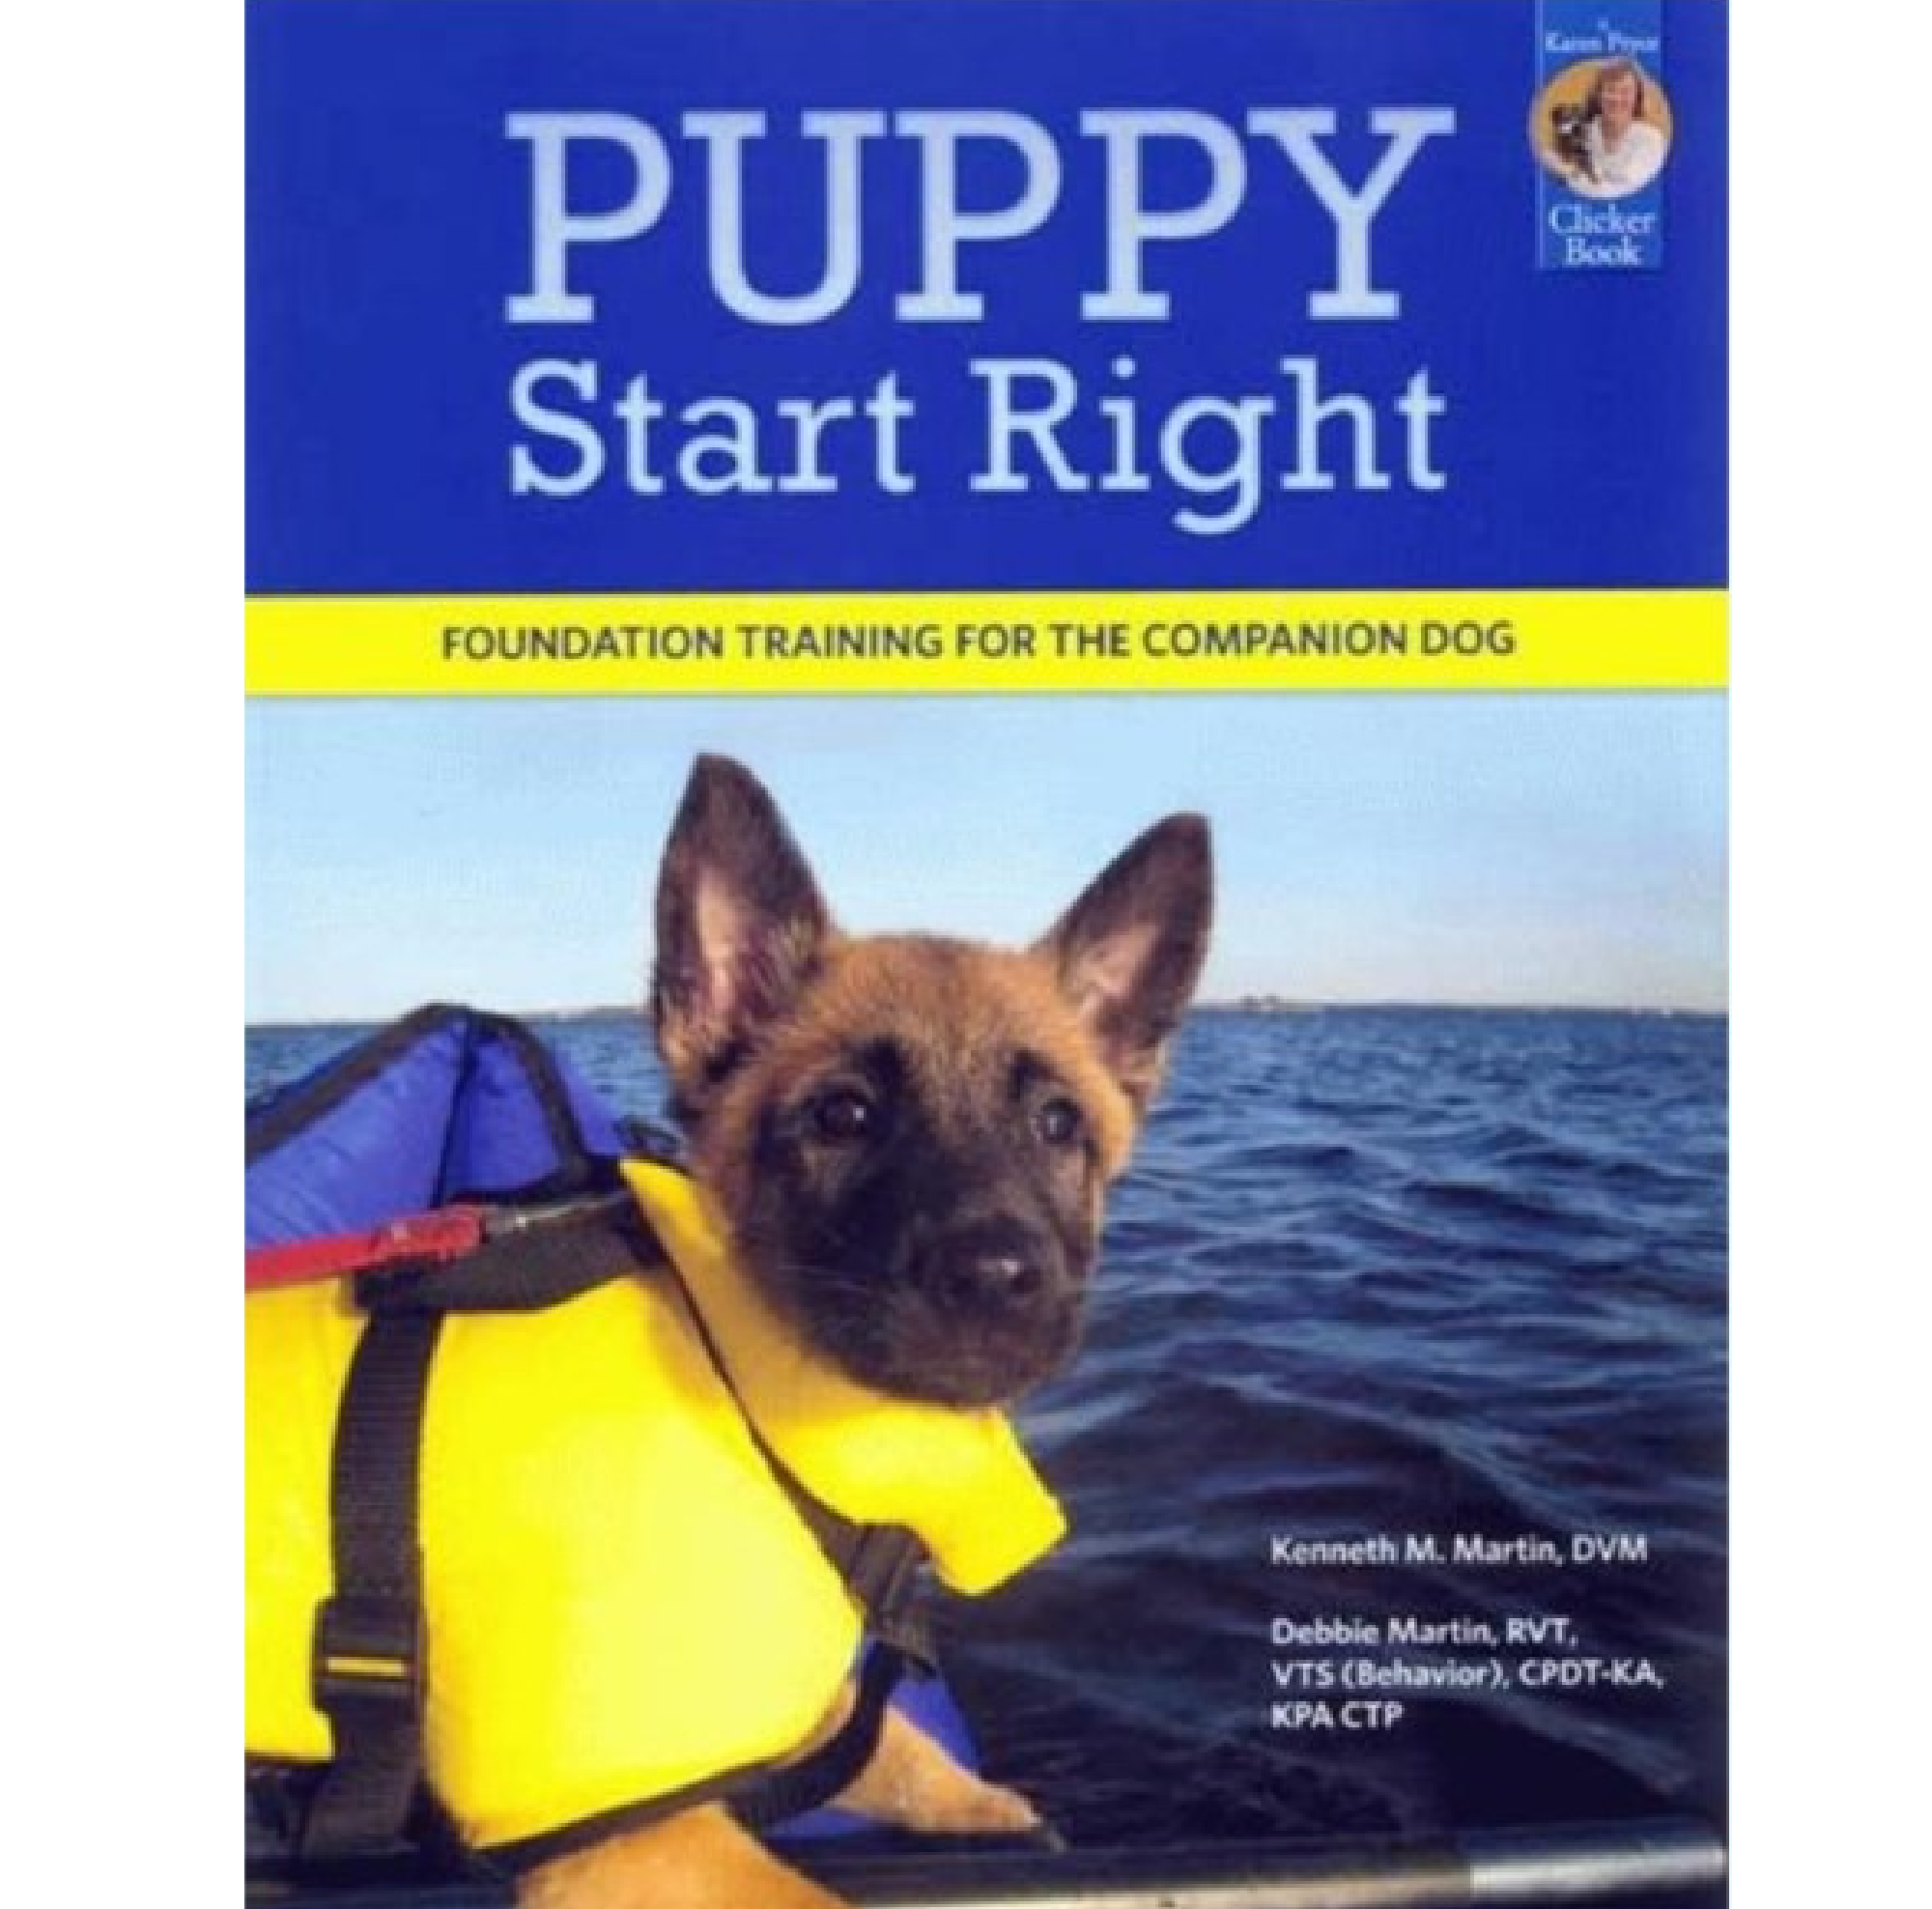 Puppy Start Right - Foundation Training for The Companion Dog